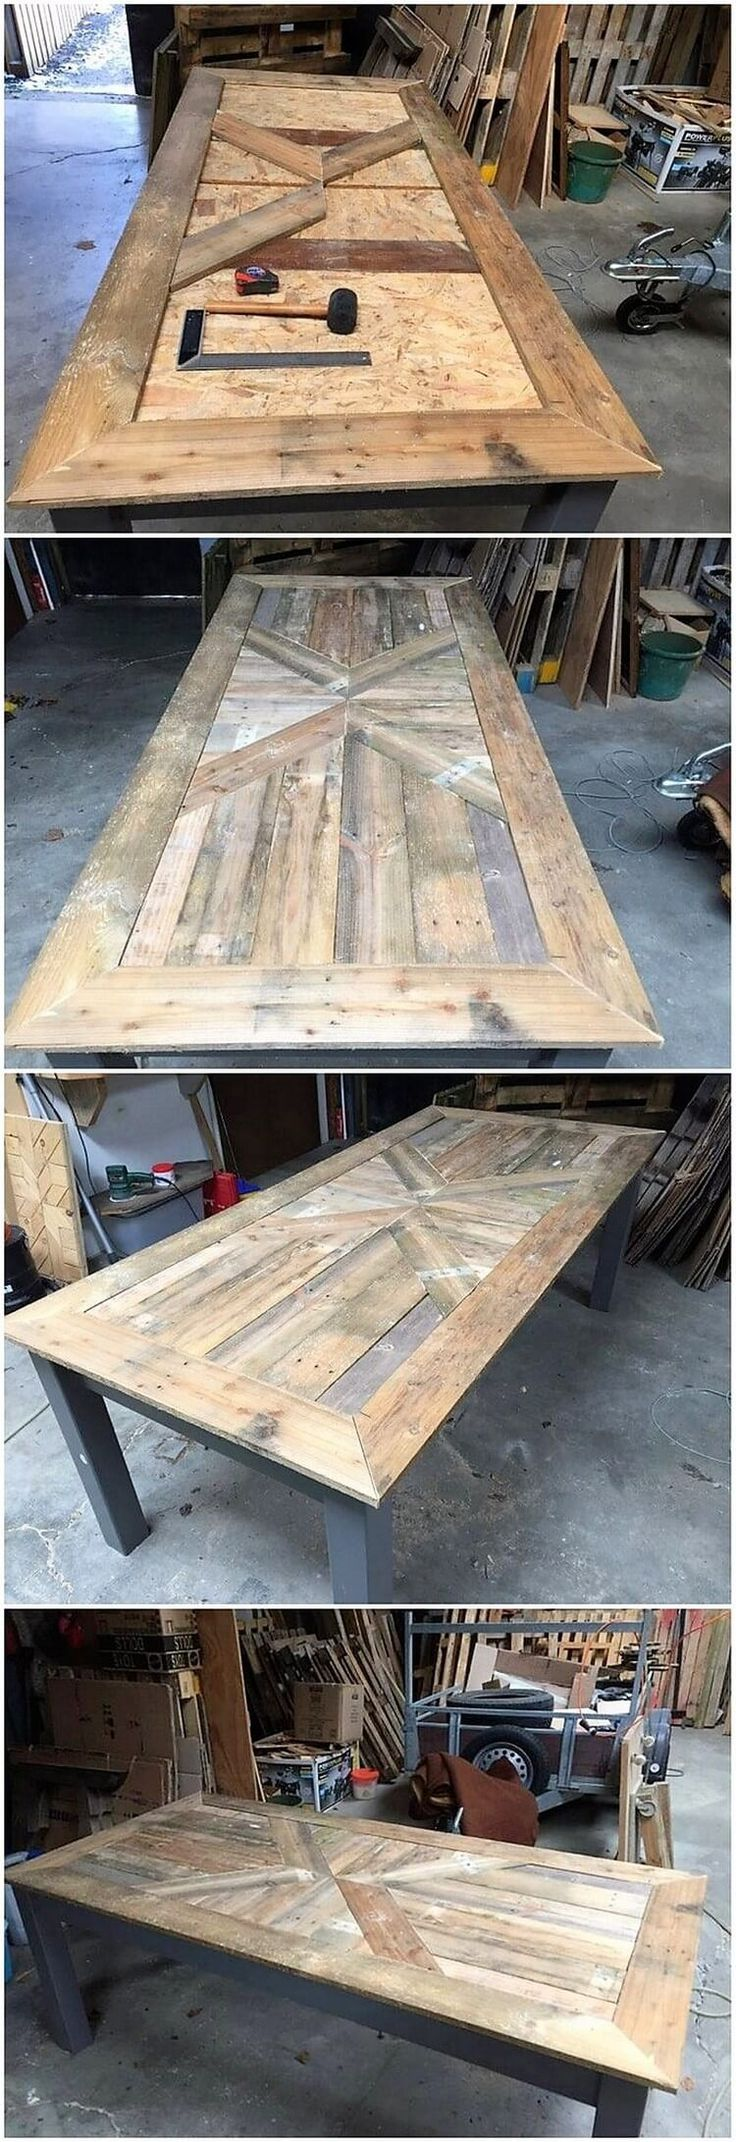 Incredible ideas for upcycling shipping wooden pallets